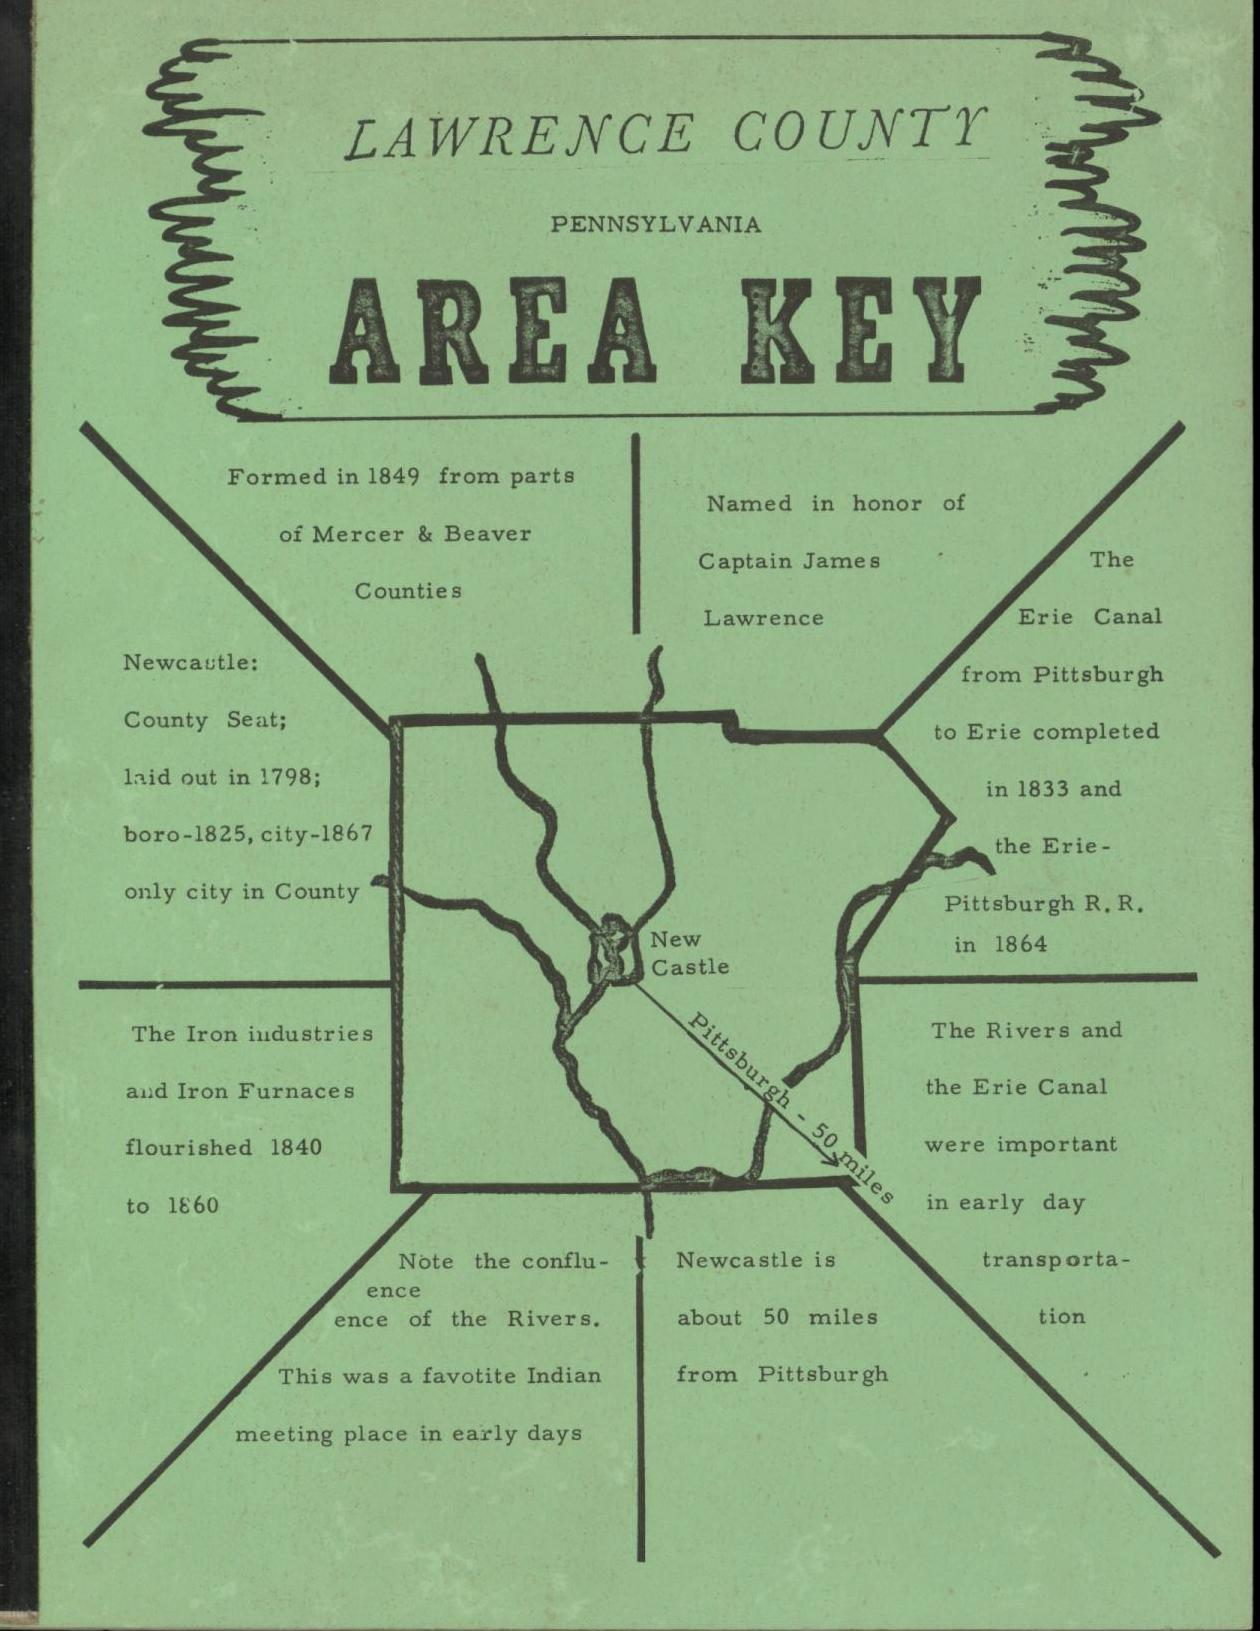 Image for Lawrence County Pennsylvania Area Key: A Guide to the Genealogical Records of Lawrence County, Pennsylvania, including Maps, Histories, Charts, and Other Helpful Materials